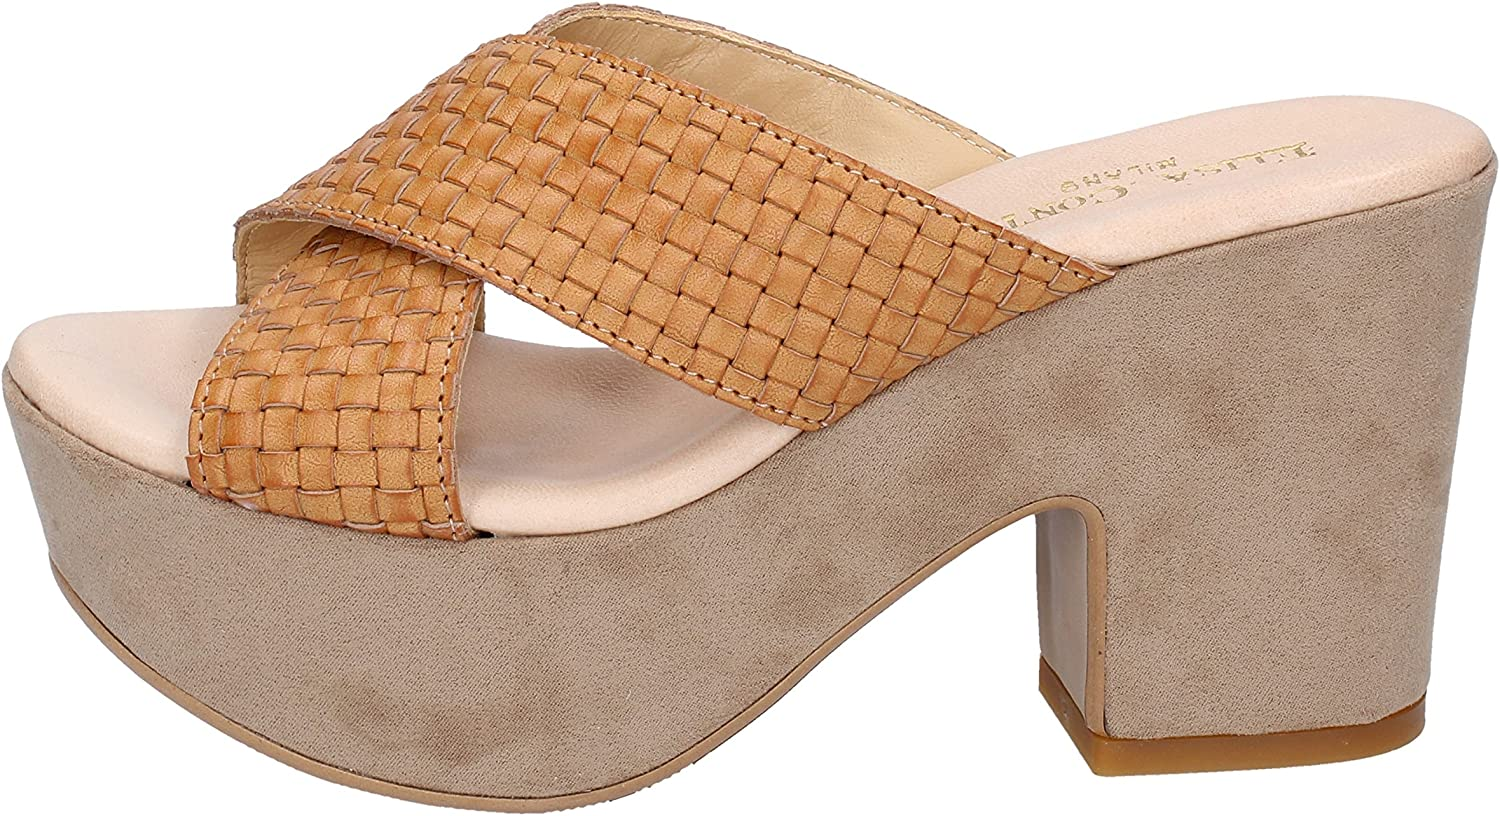 ELISA CONTE Sandals Womens Leather Brown